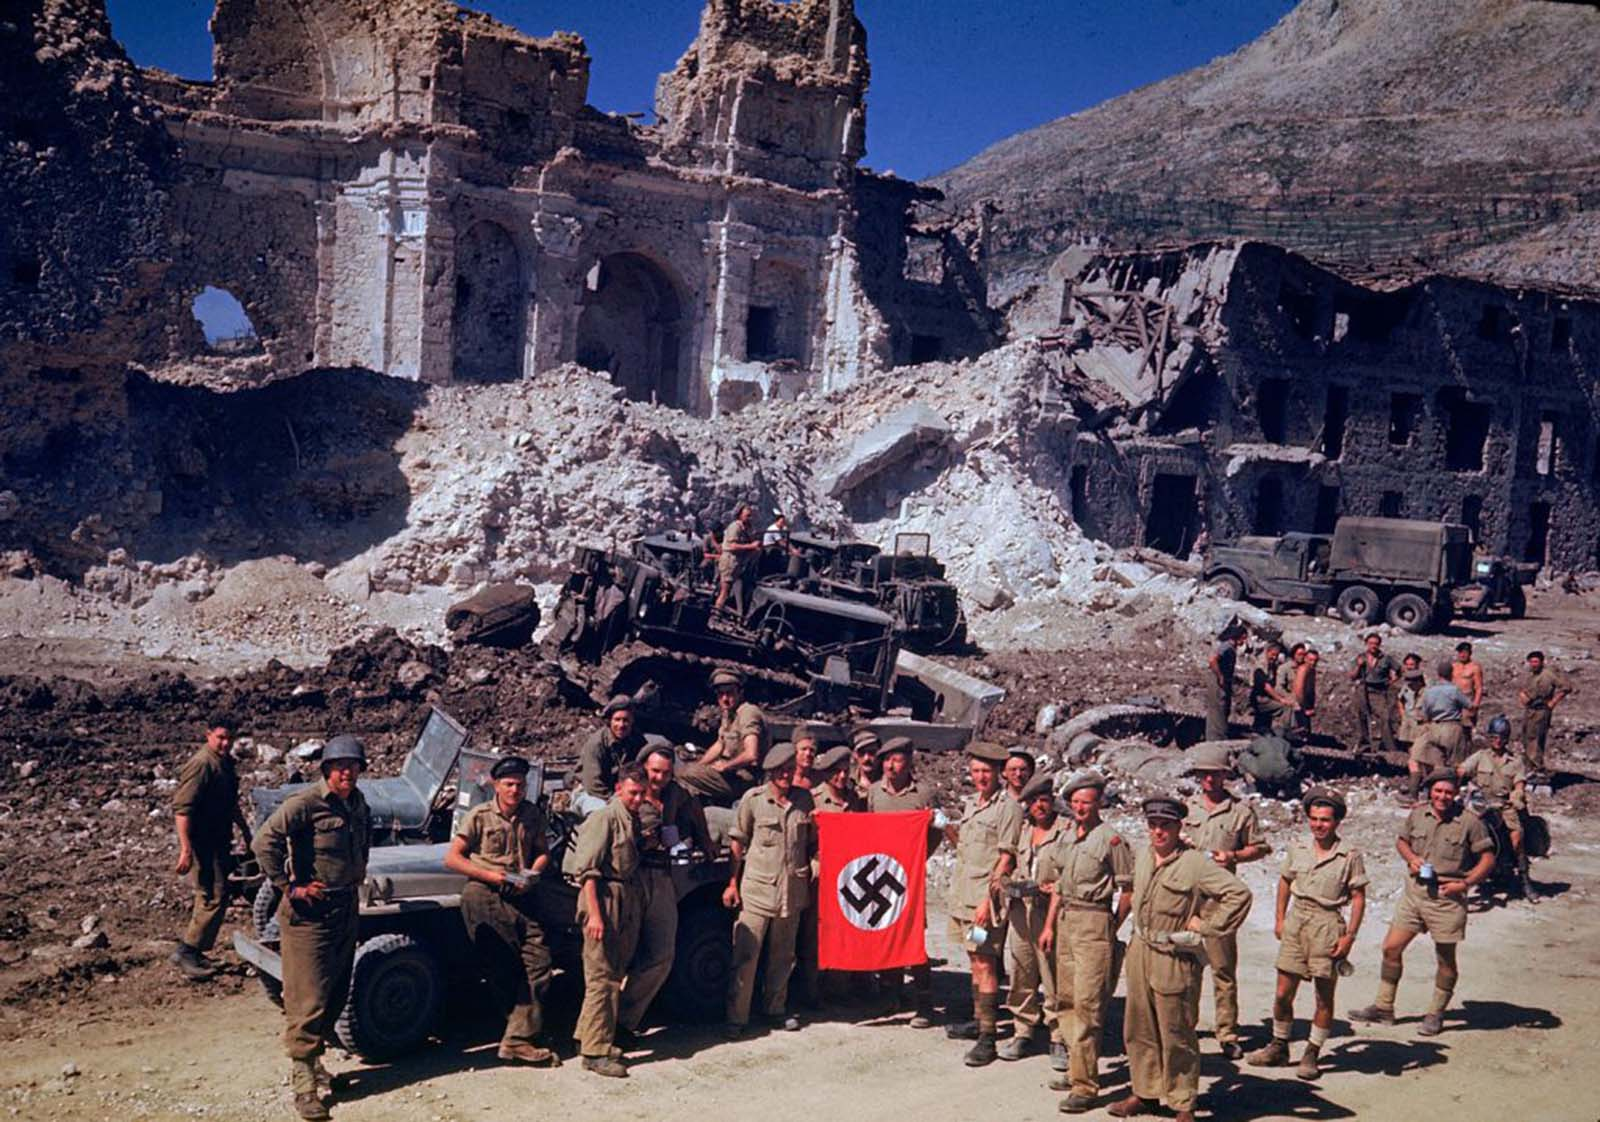 British and South African soldiers held up a Nazi trophy flag while combat engineers on bulldozers cleared a path through the debris of a bombed-out city, Italian Campaign, World War II.